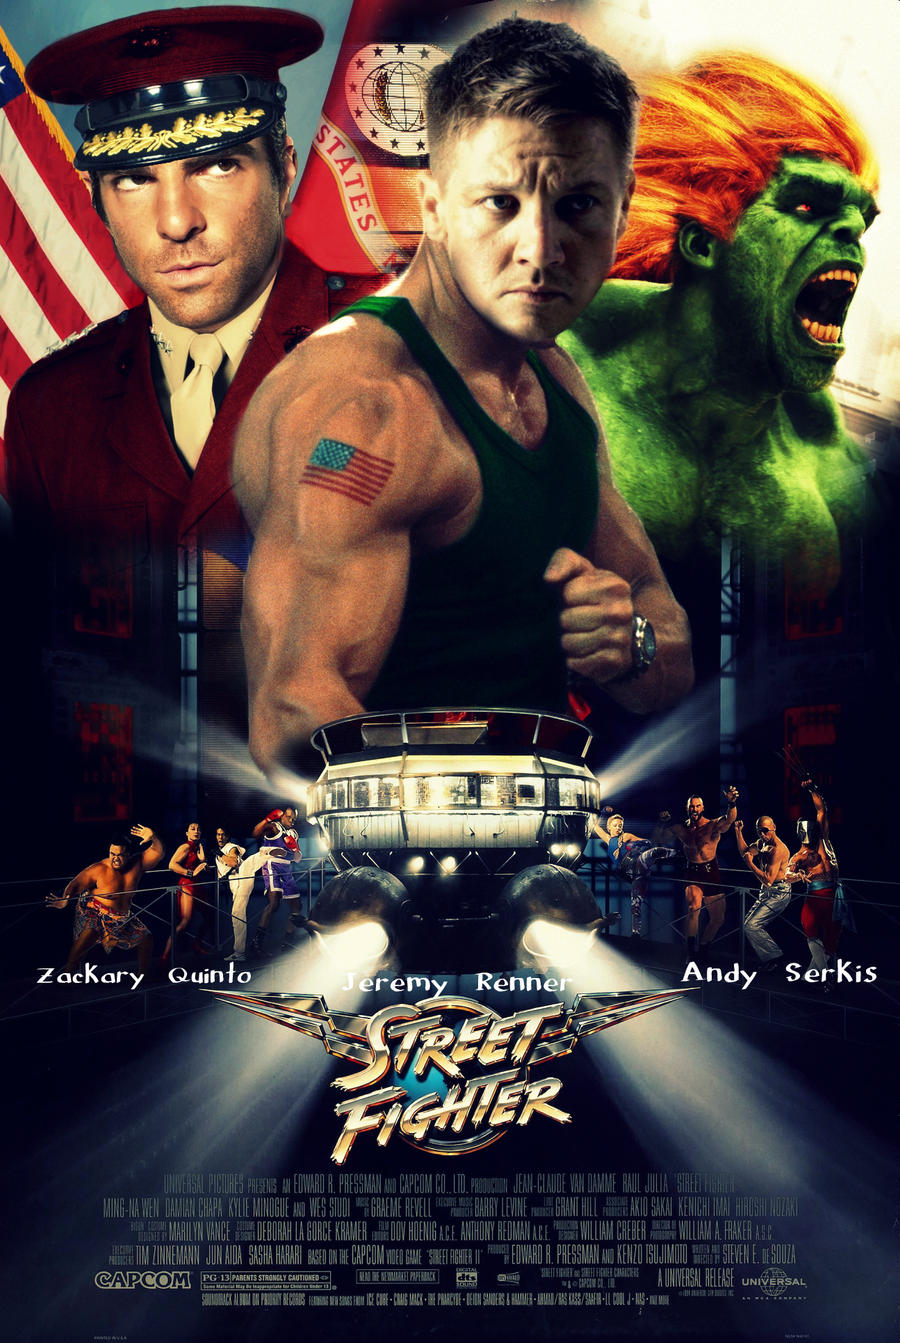 Street Fighter Movie Poster By Melciah1791 On Deviantart